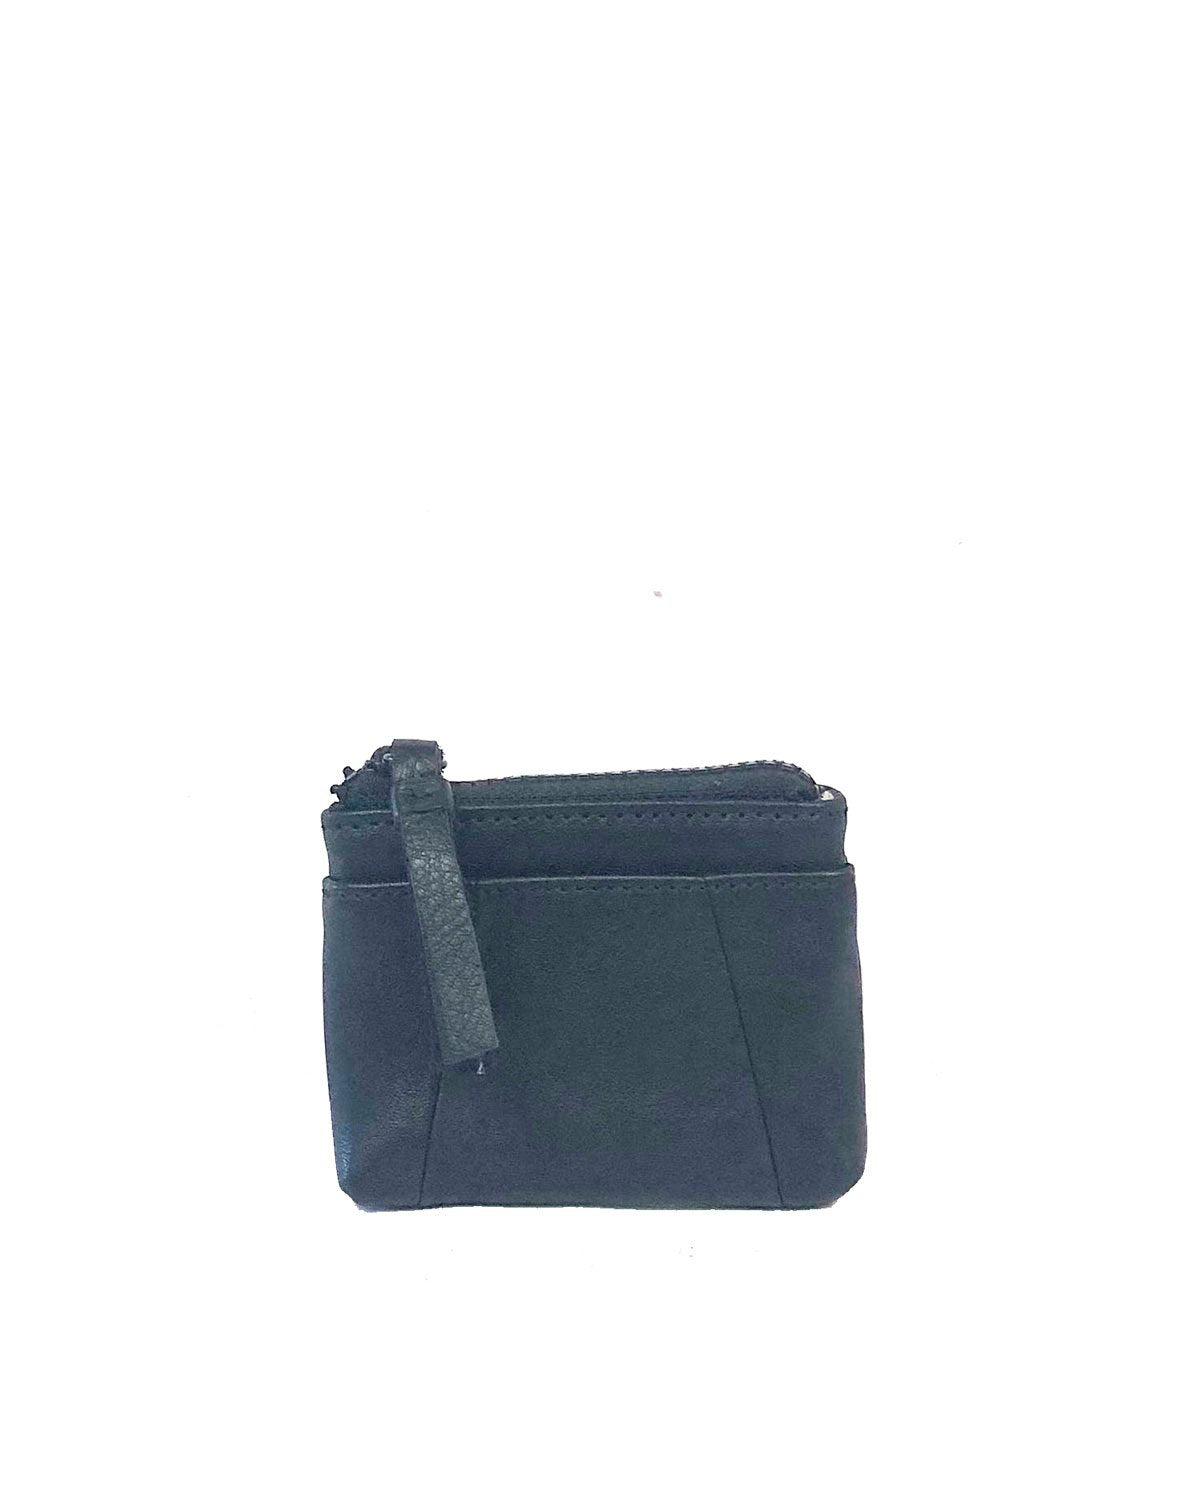 Paige card case in Black